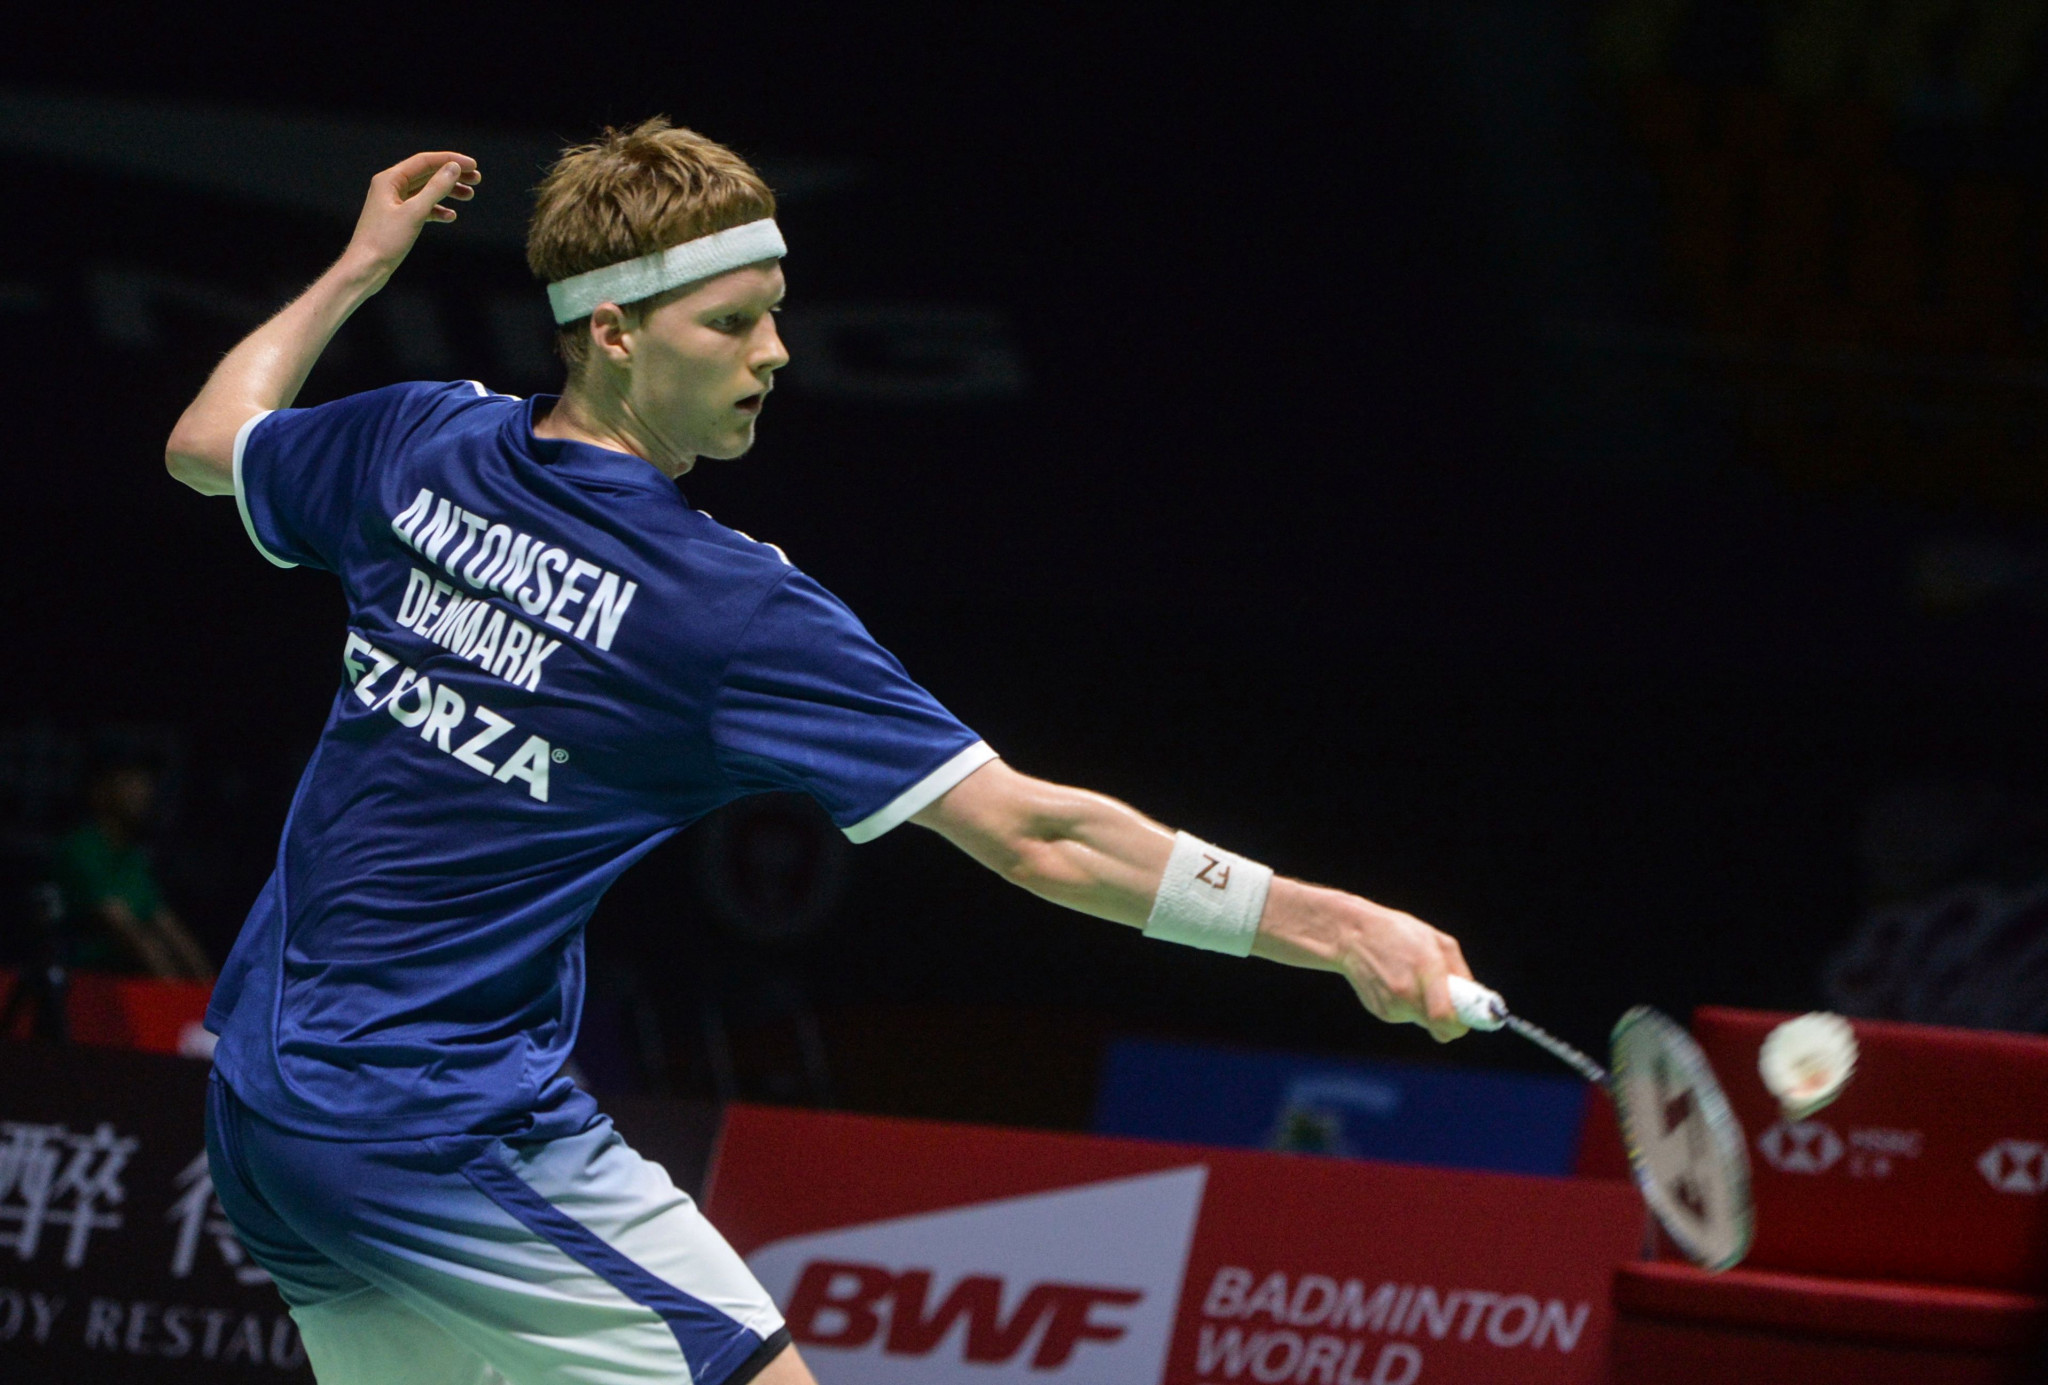 Antonsen stuns world champion Momota to clinch first major title at BWF Indonesia Masters